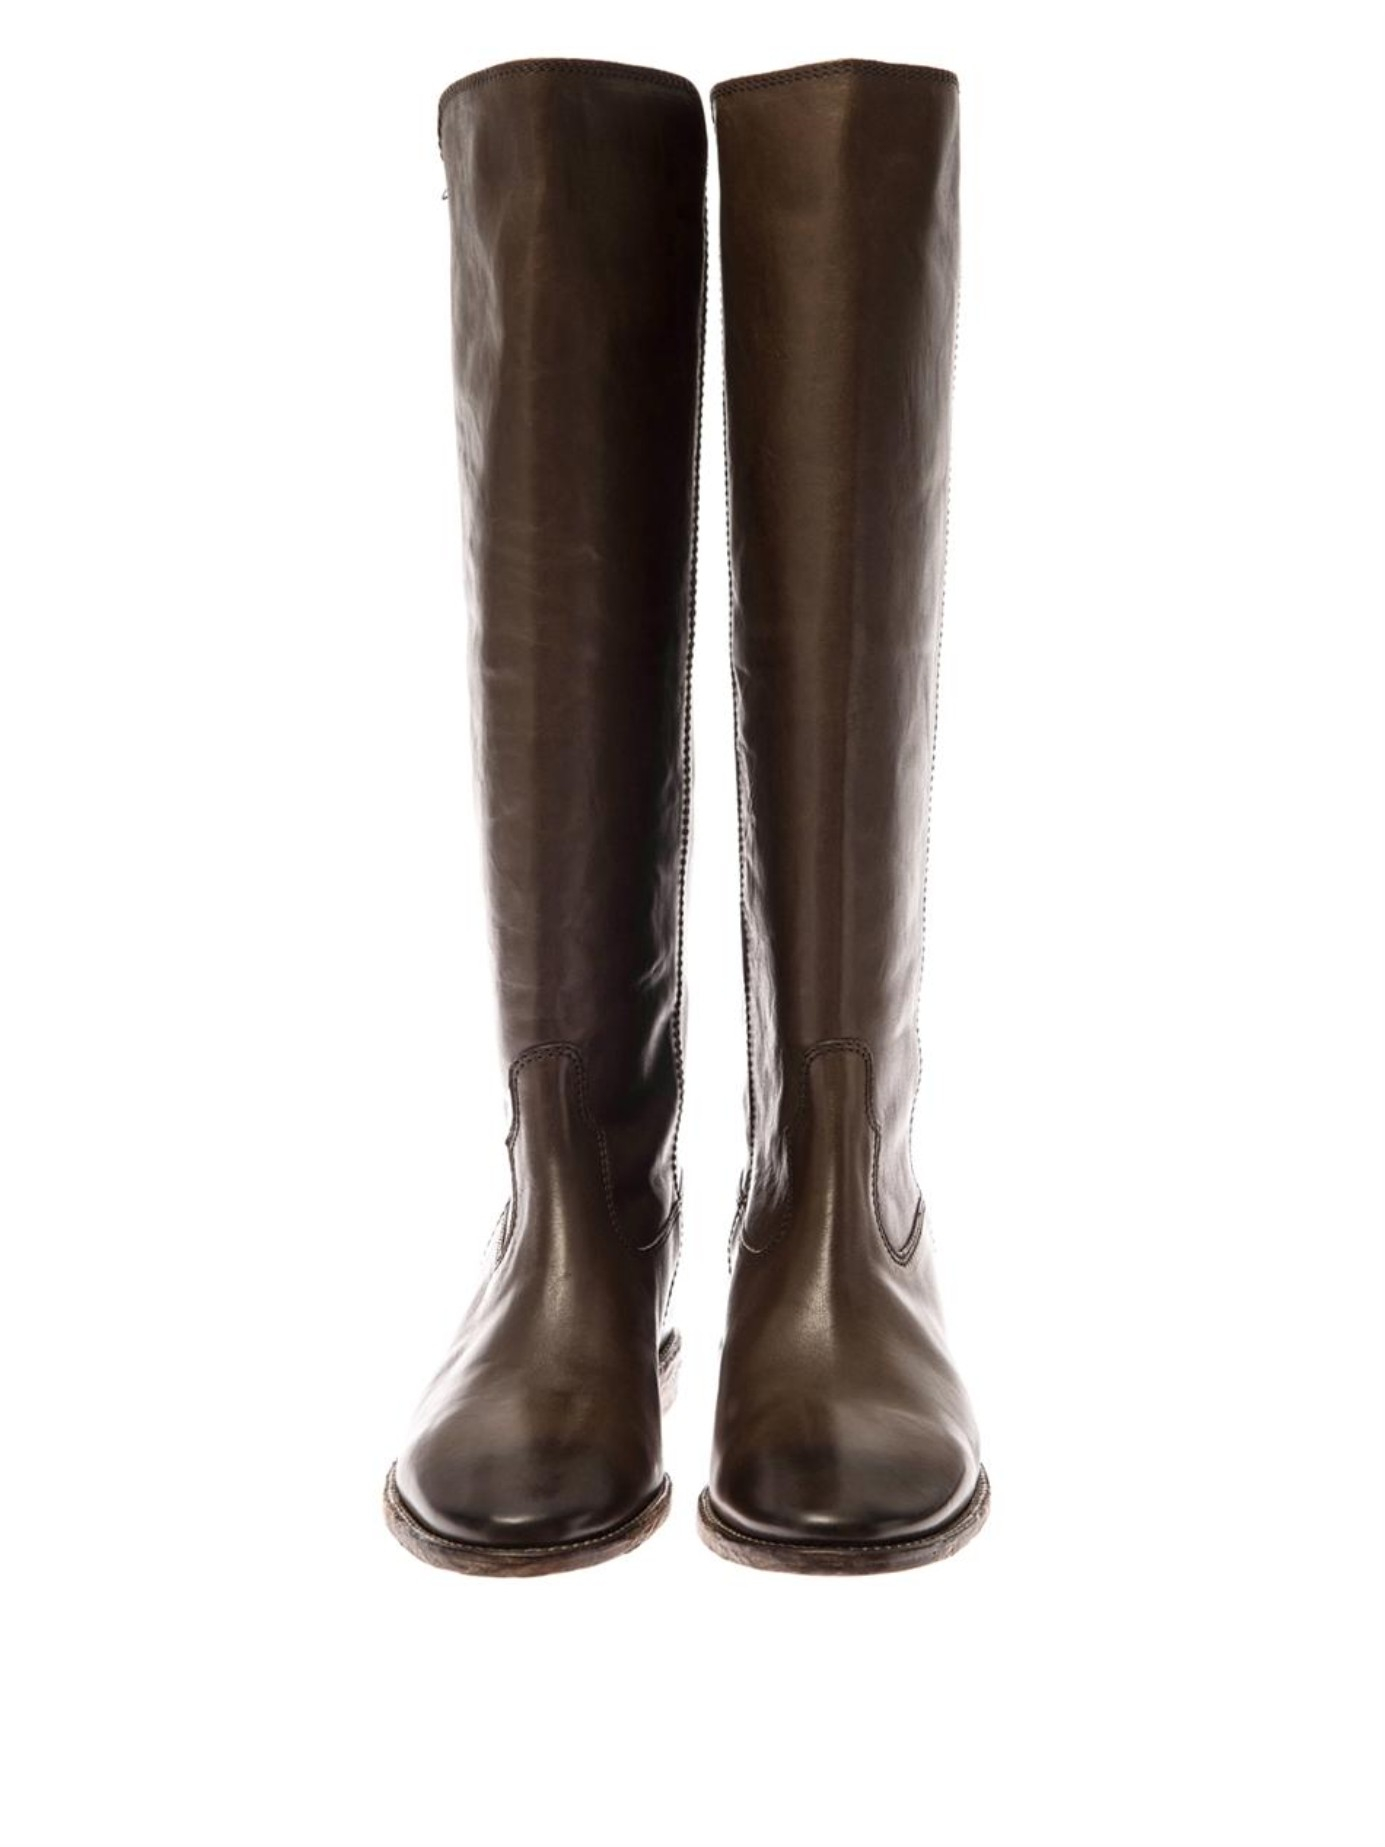 isabel marant chess leather boots in brown lyst. Black Bedroom Furniture Sets. Home Design Ideas